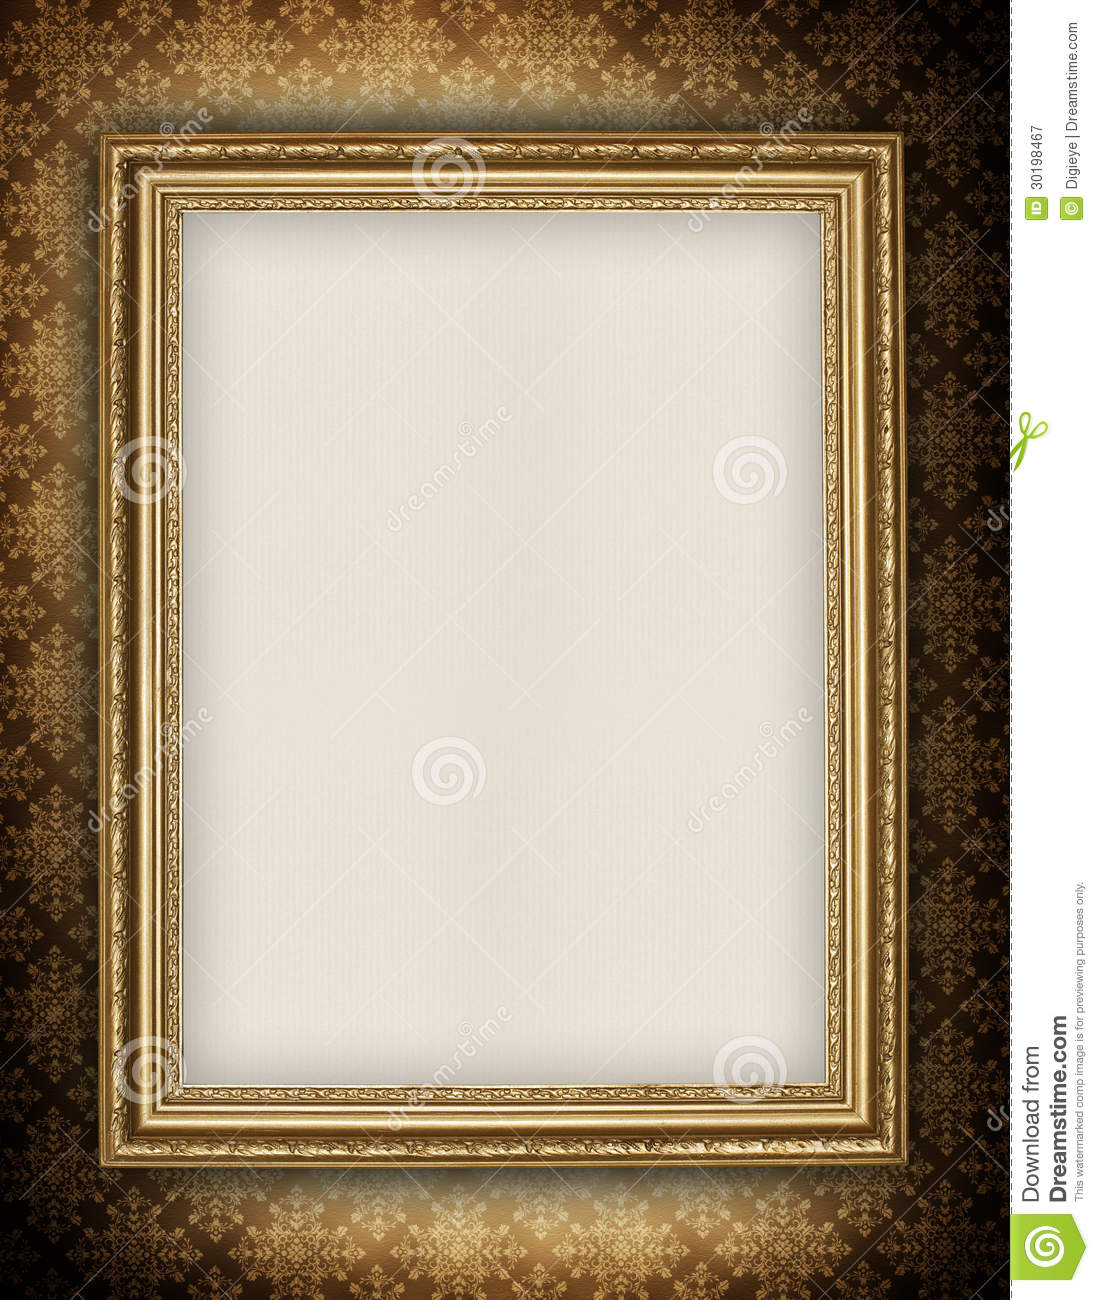 Blank Sheet In Picture Frame Royalty Free Stock ...